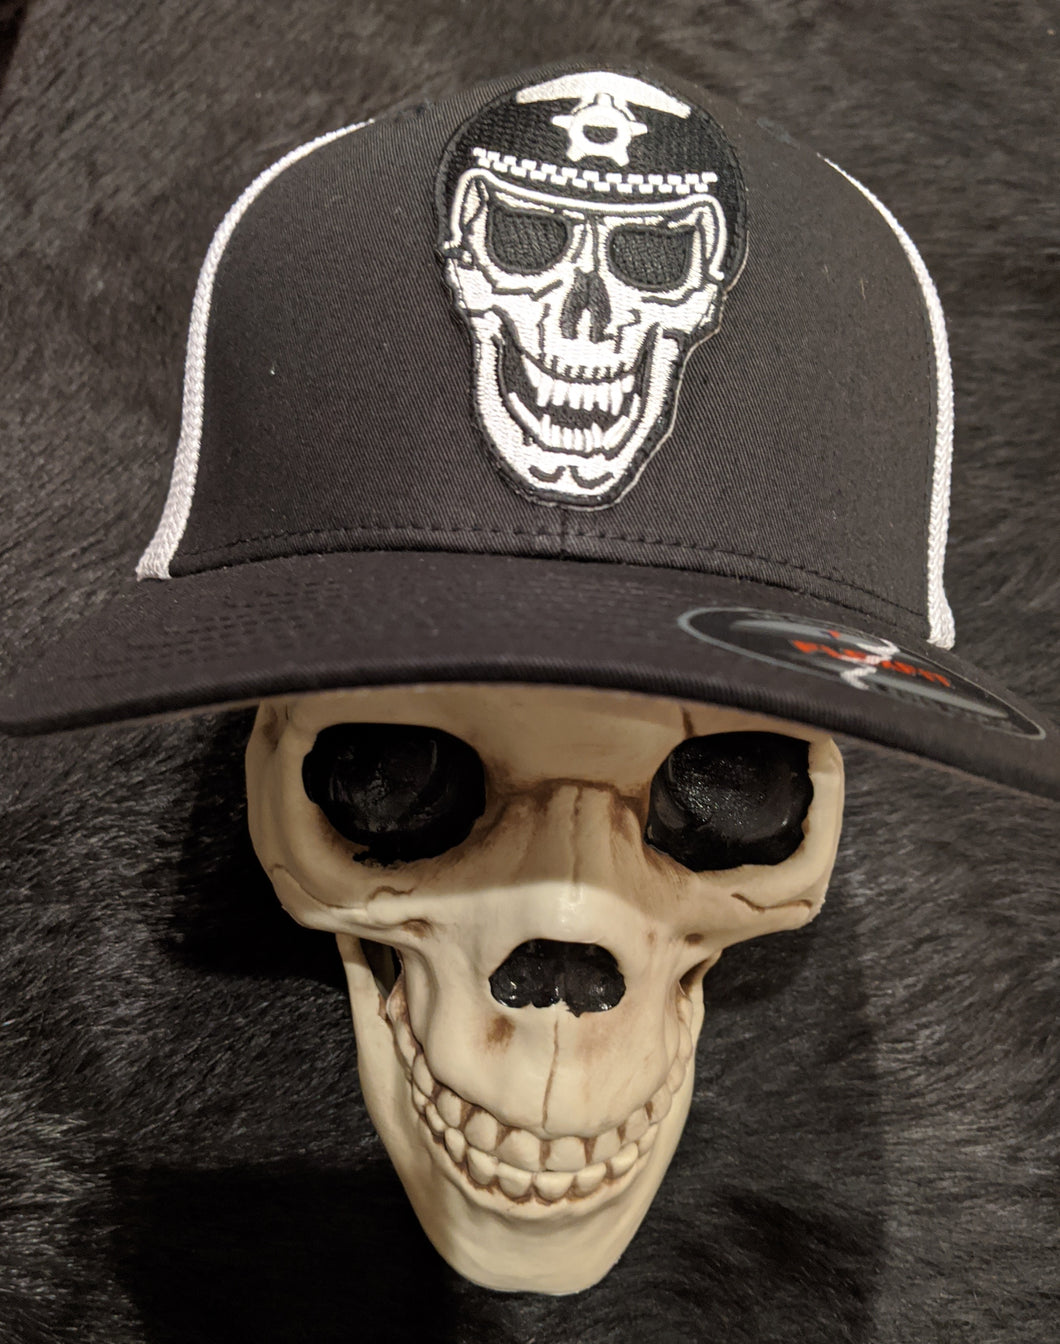 L.E. SKULL FLEXFIT HAT - NO LAWS MOTORCYCLES